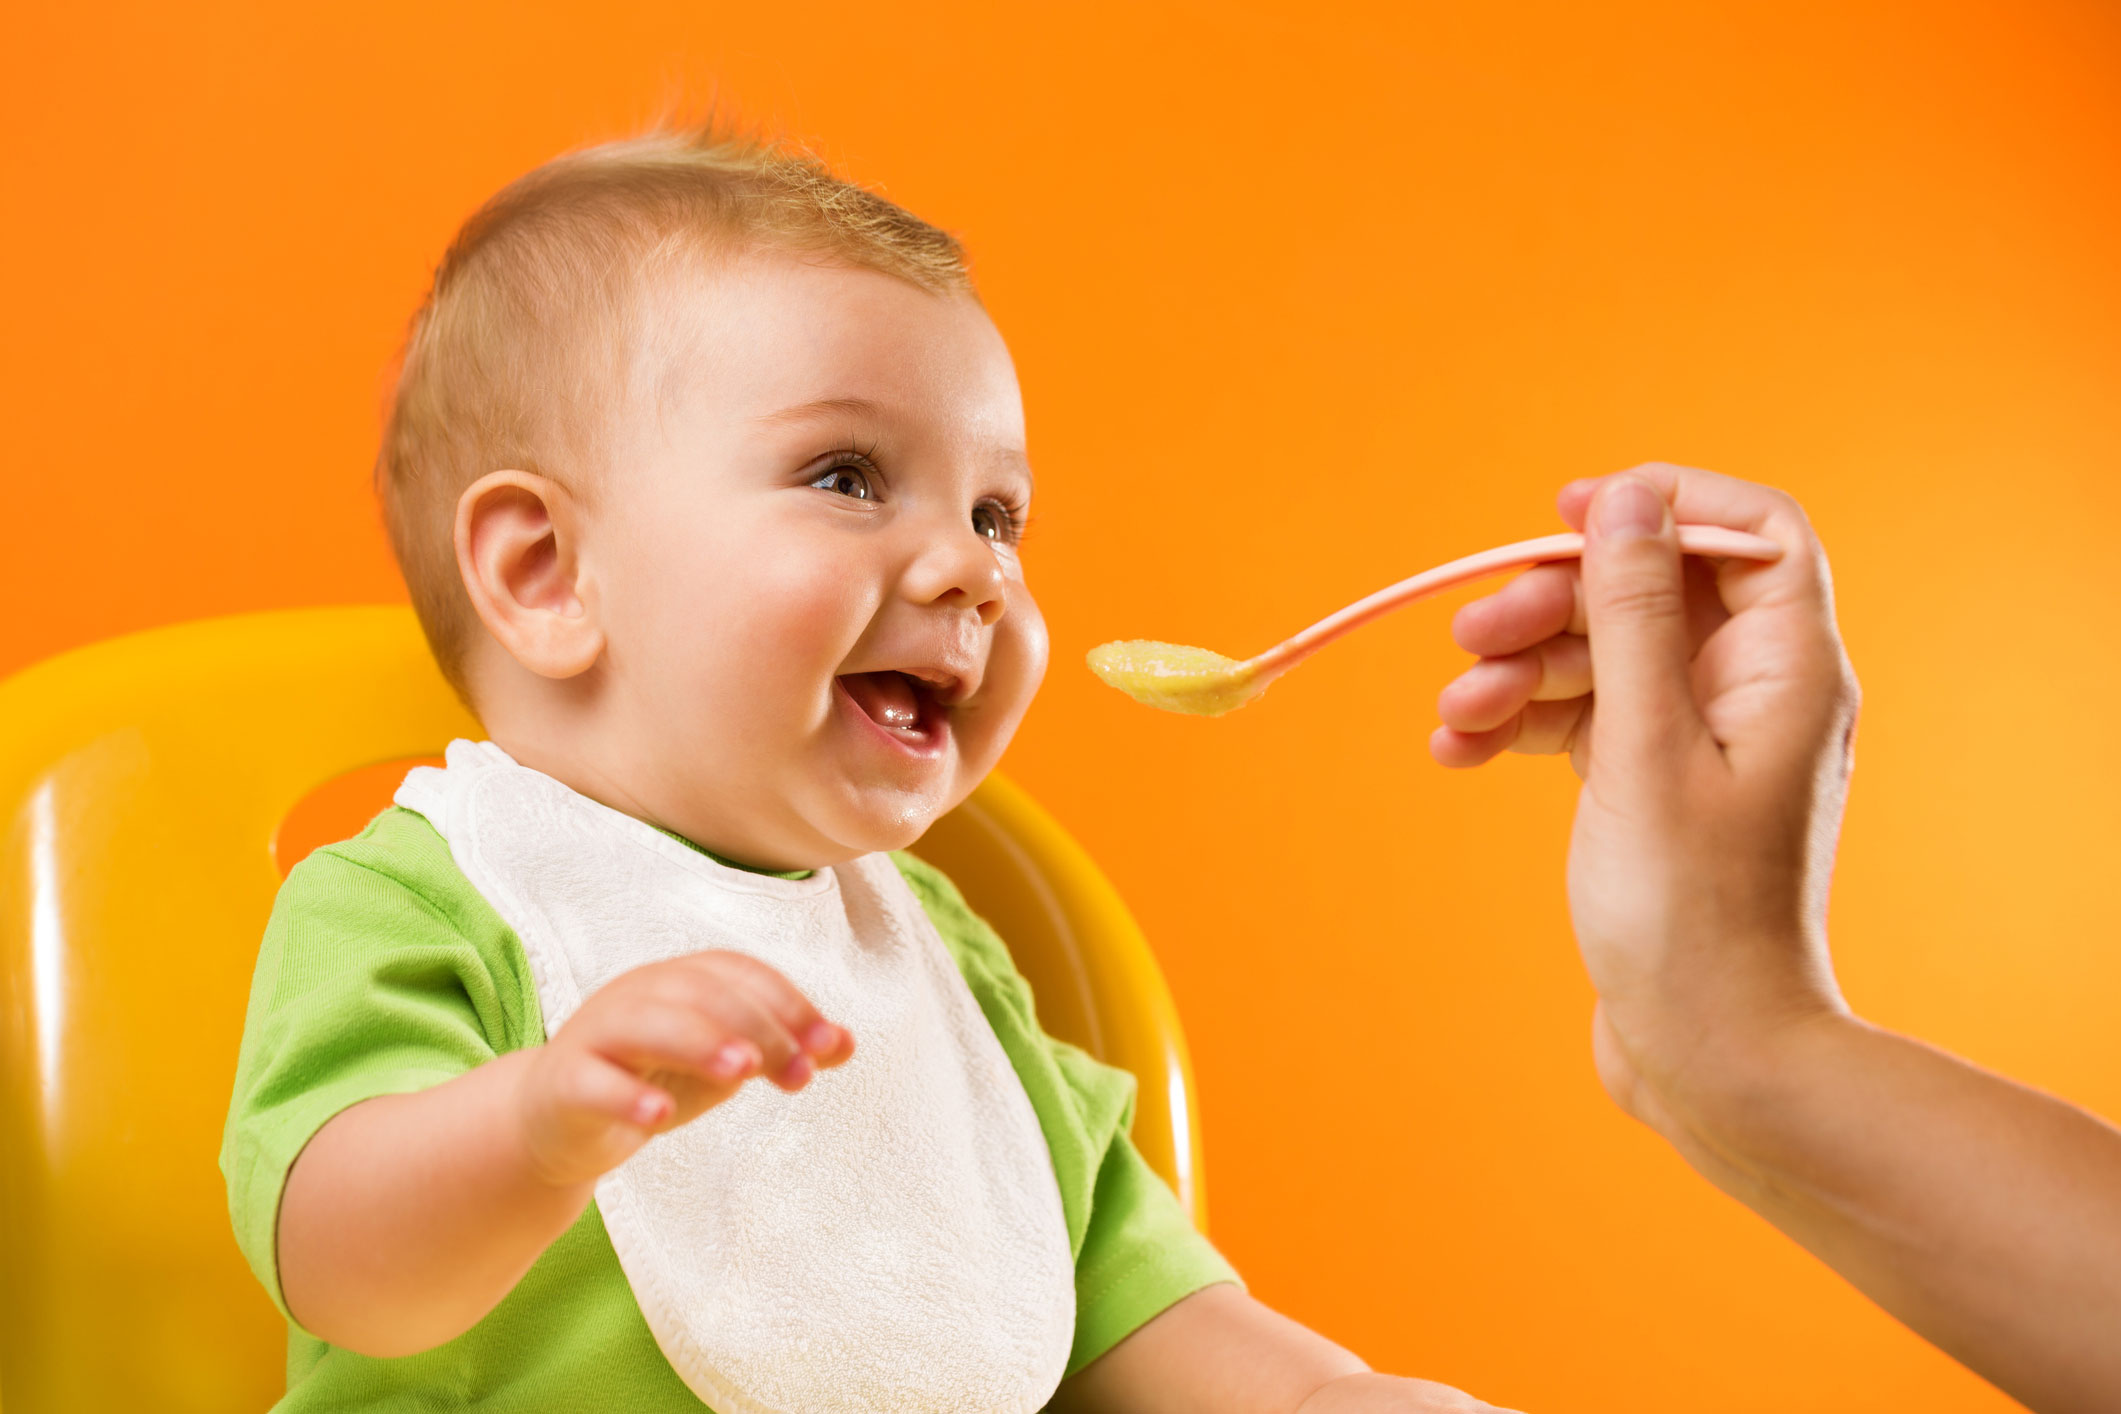 Feeding-cheerful-baby-on-orange-background